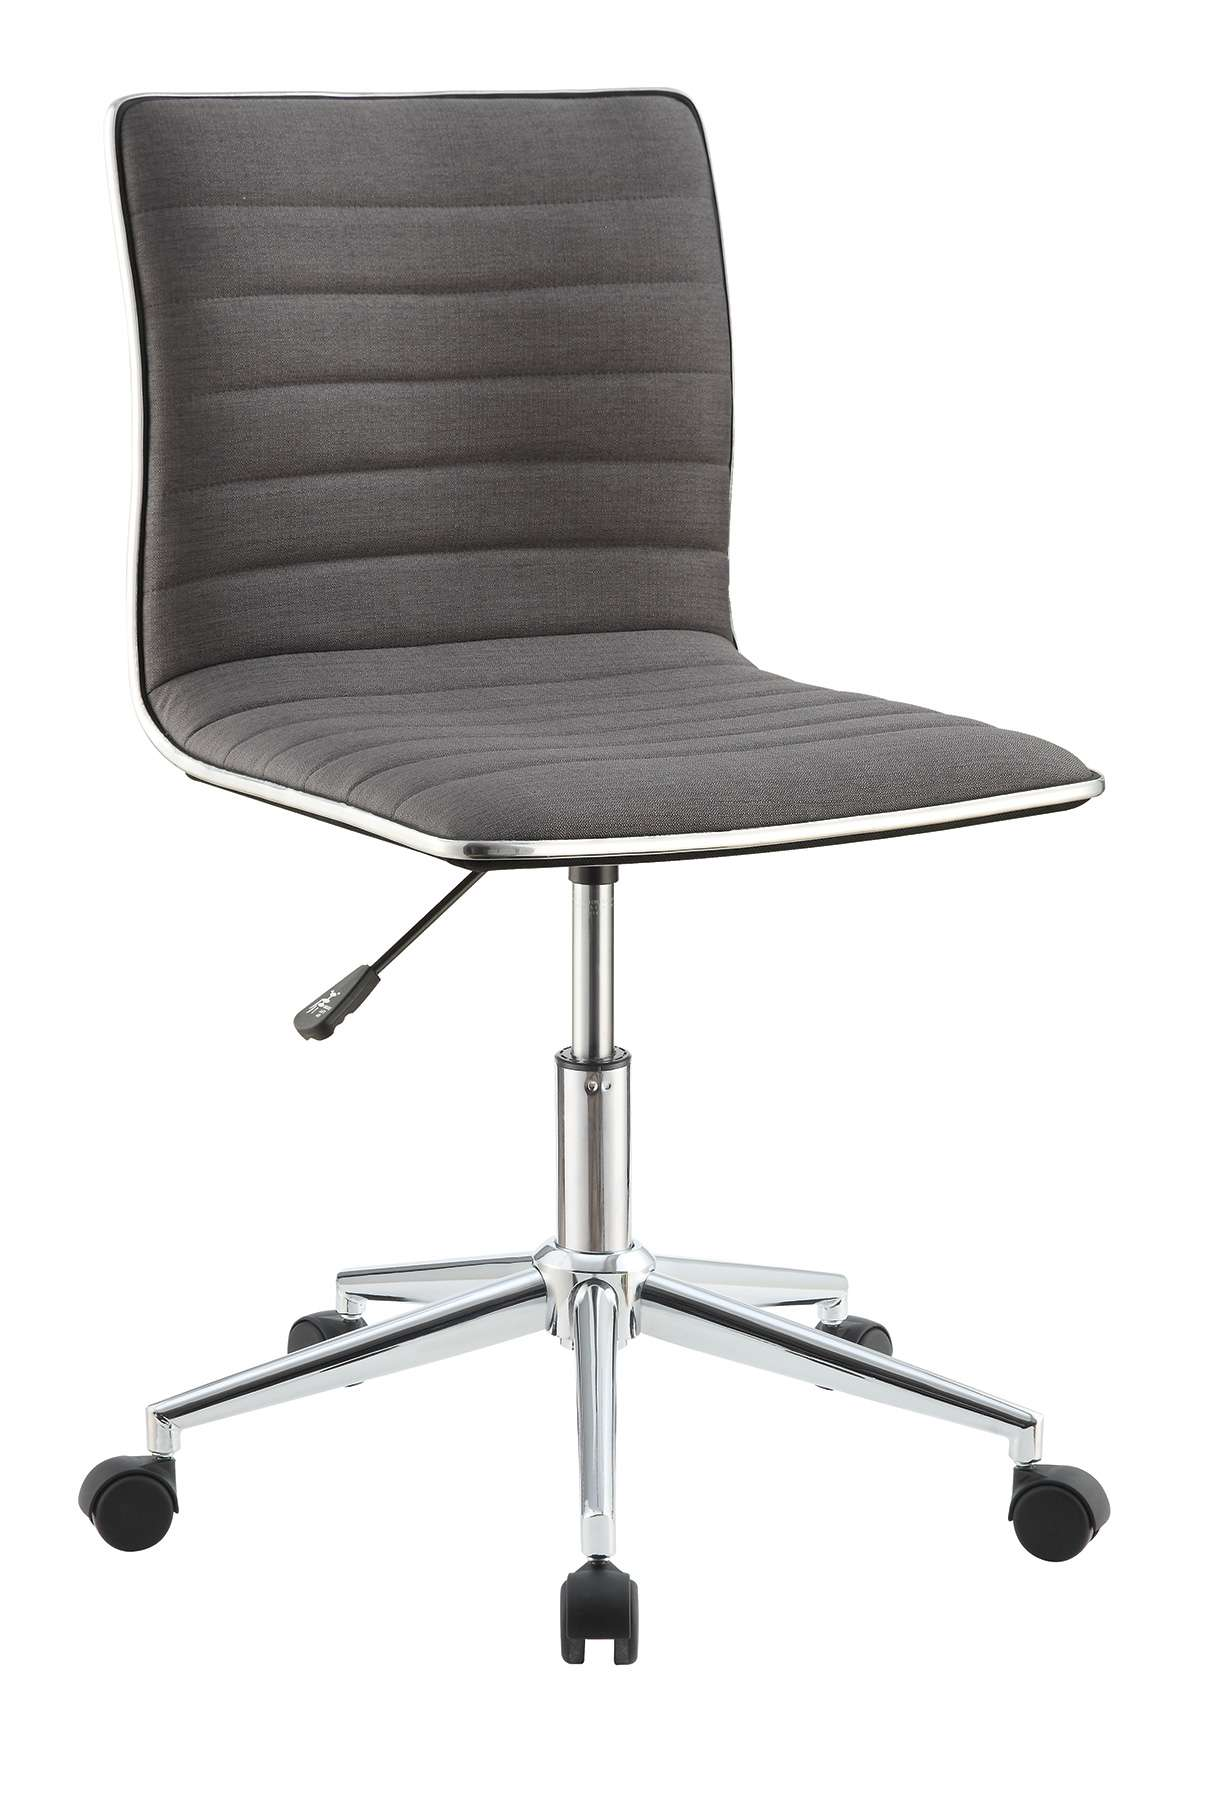 Gray Office Chair with Chrome Base